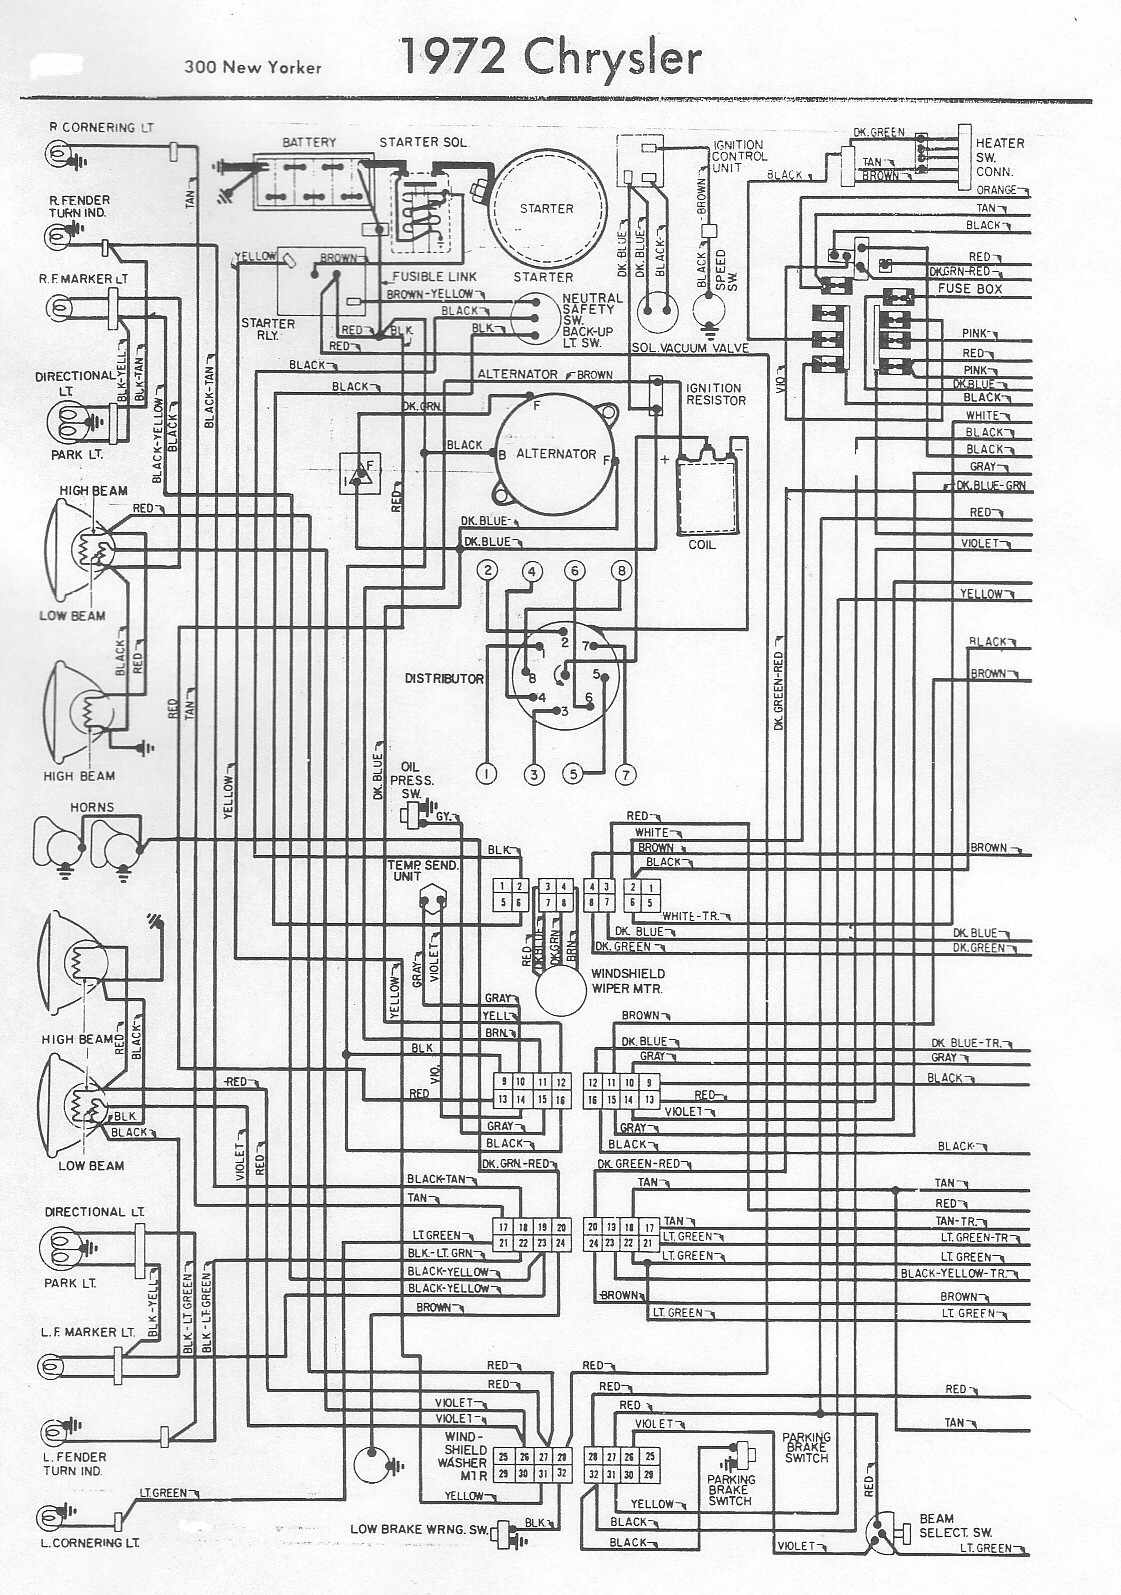 small resolution of chrysler concorde wiring diagrams 1955 dodge wiring 1995 chrysler concorde wiring diagram 1997 chrysler concorde wiring diagram